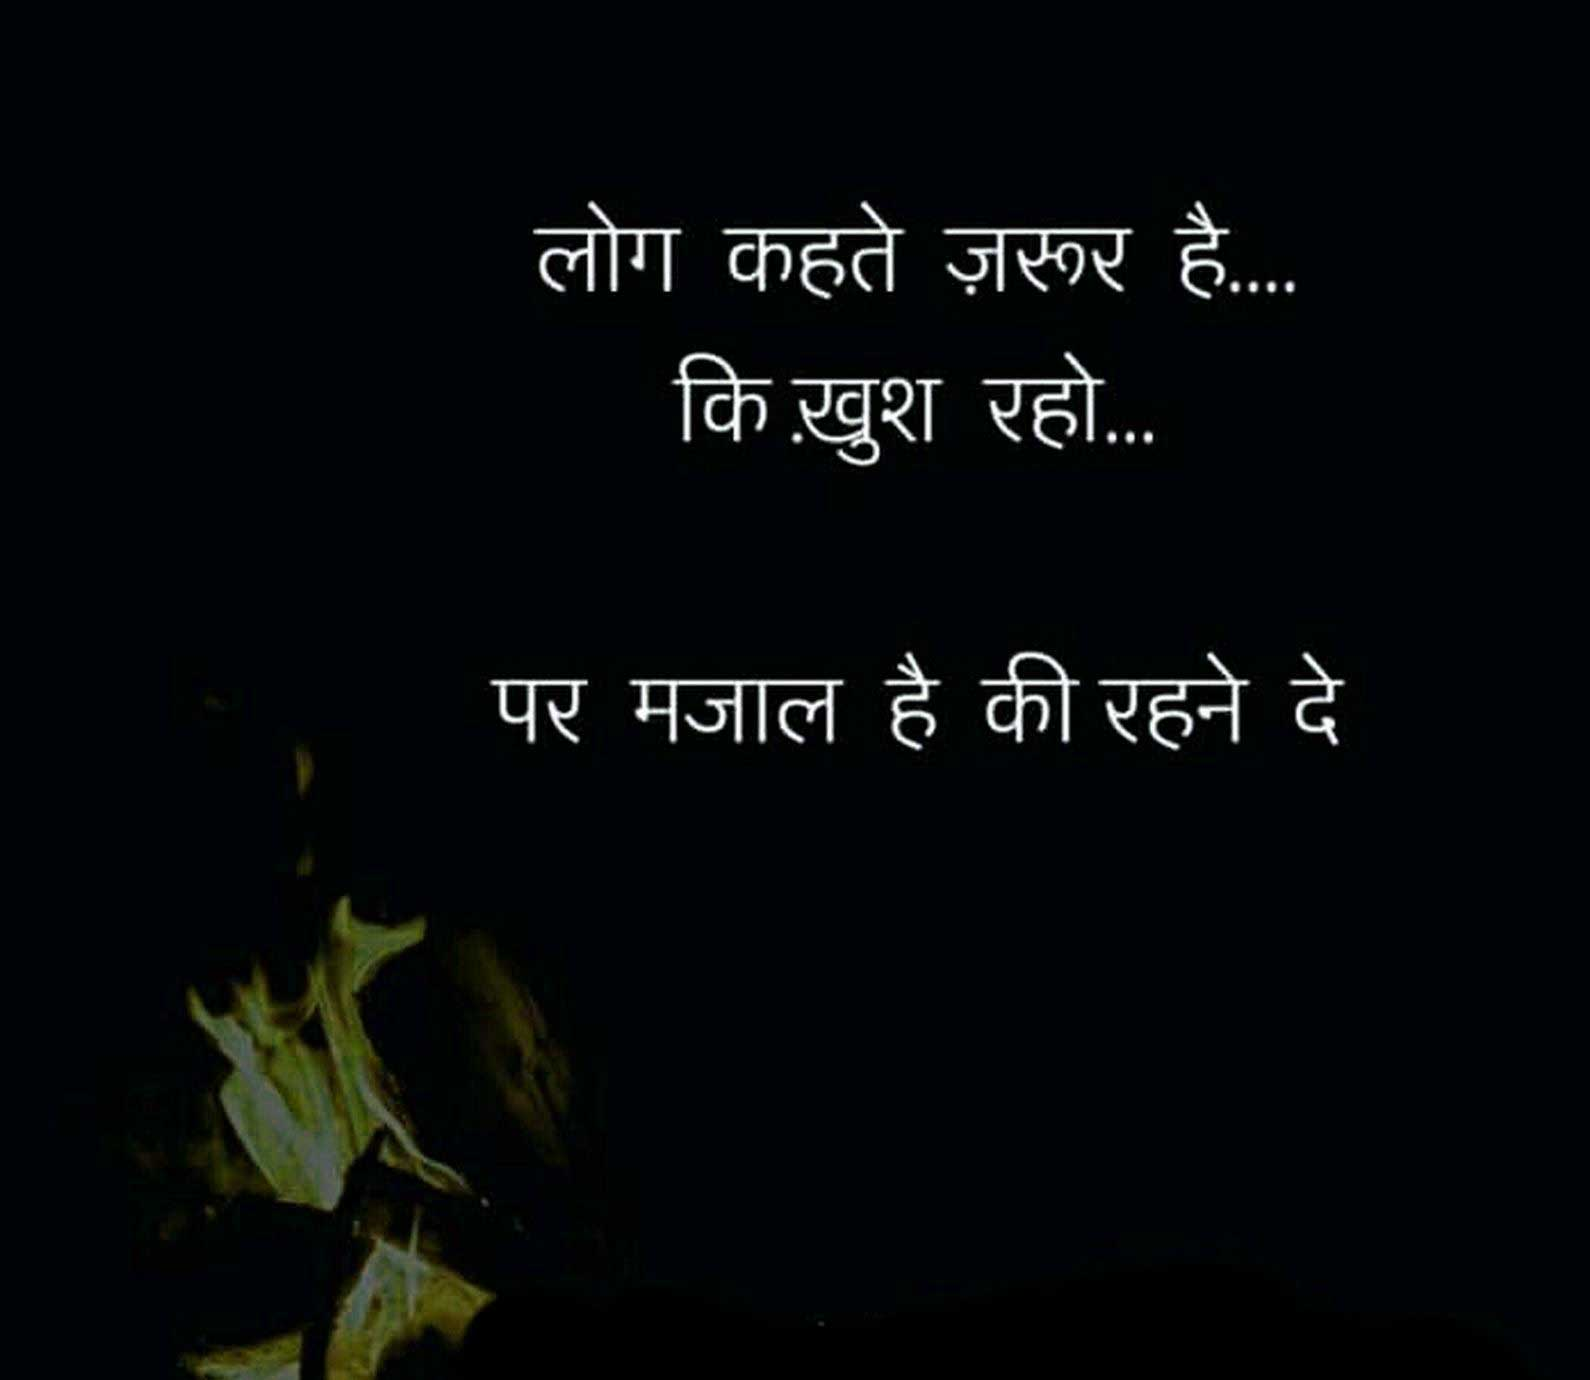 New Hindi Quotes Whatsapp DP Pictures Free